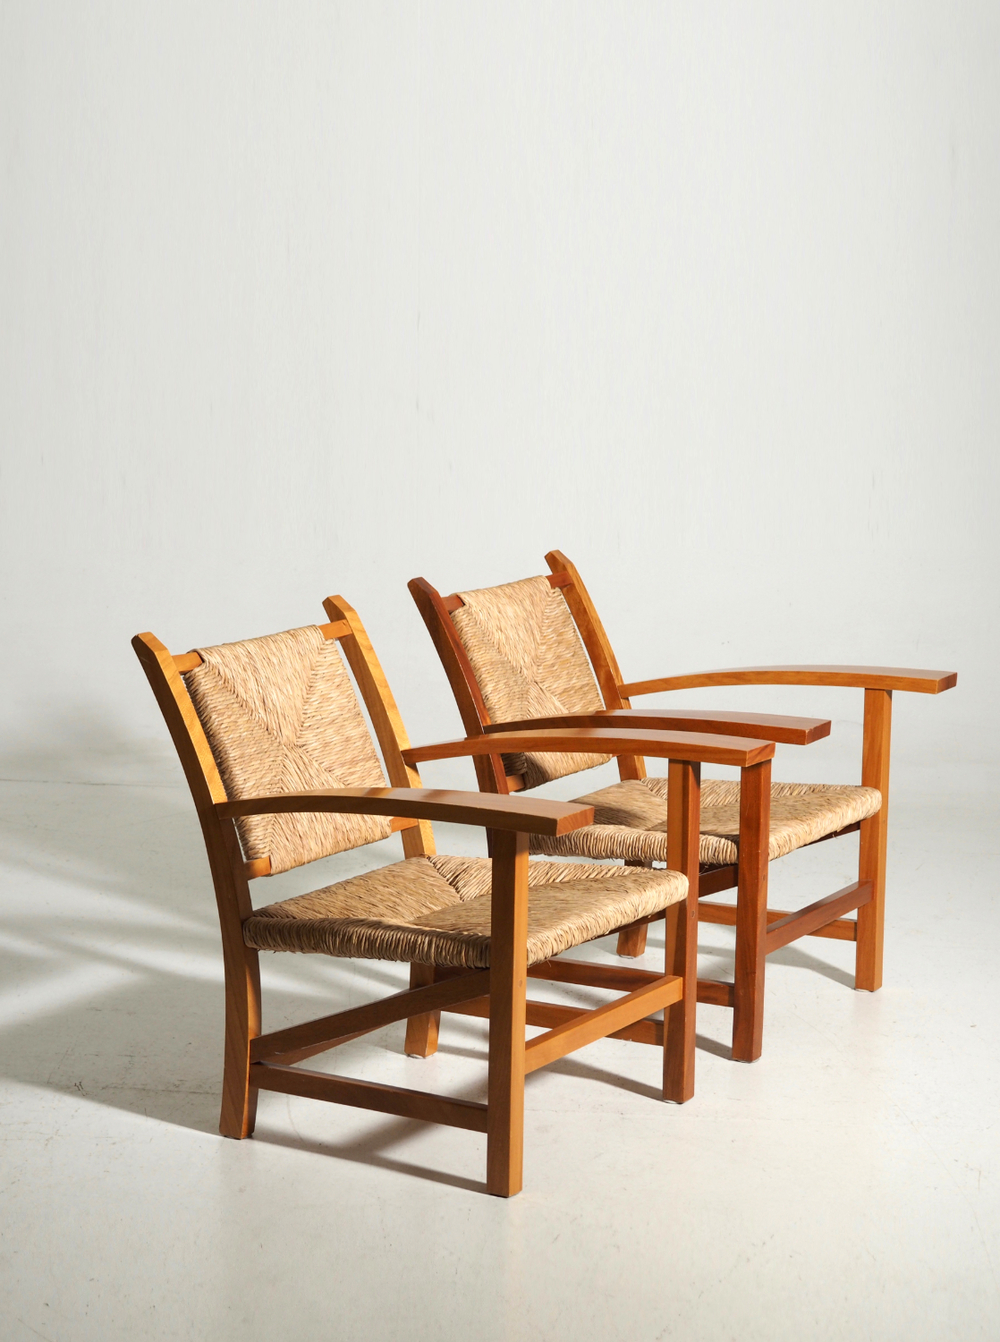 Pair of Armchairs, attributed Josep Torres Clavé